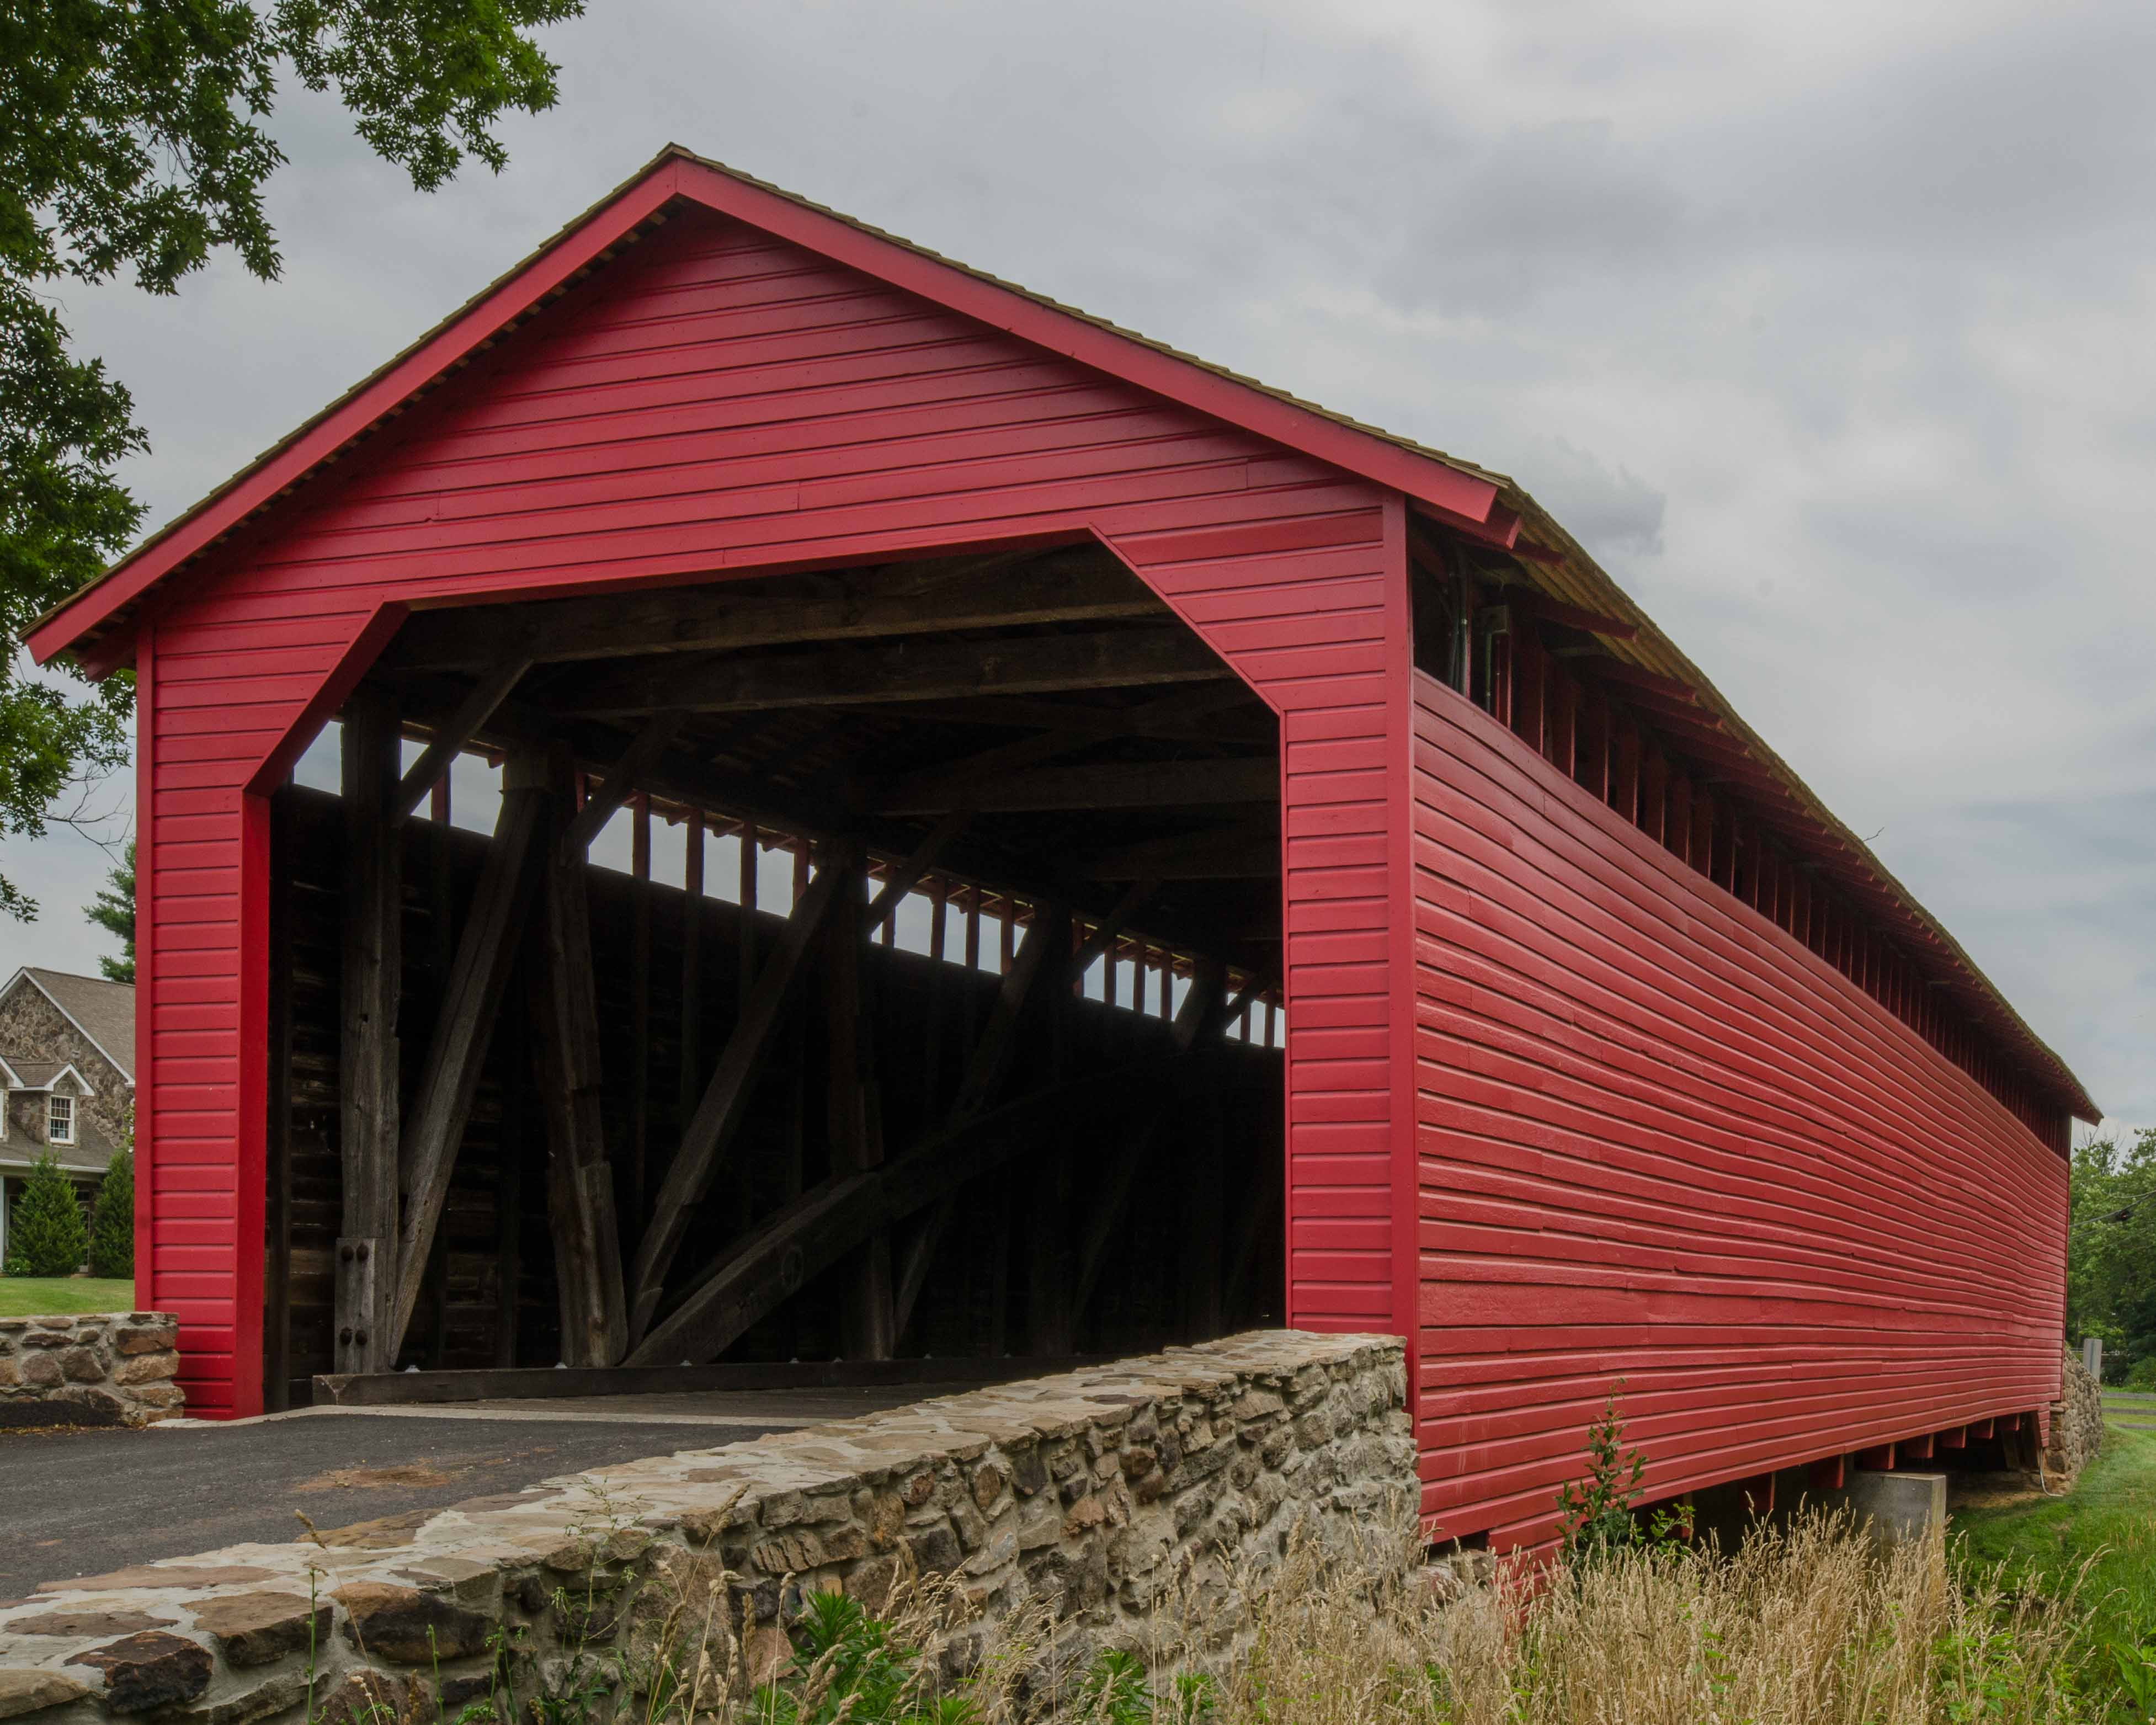 Utica Road Covered Bridge, painted red